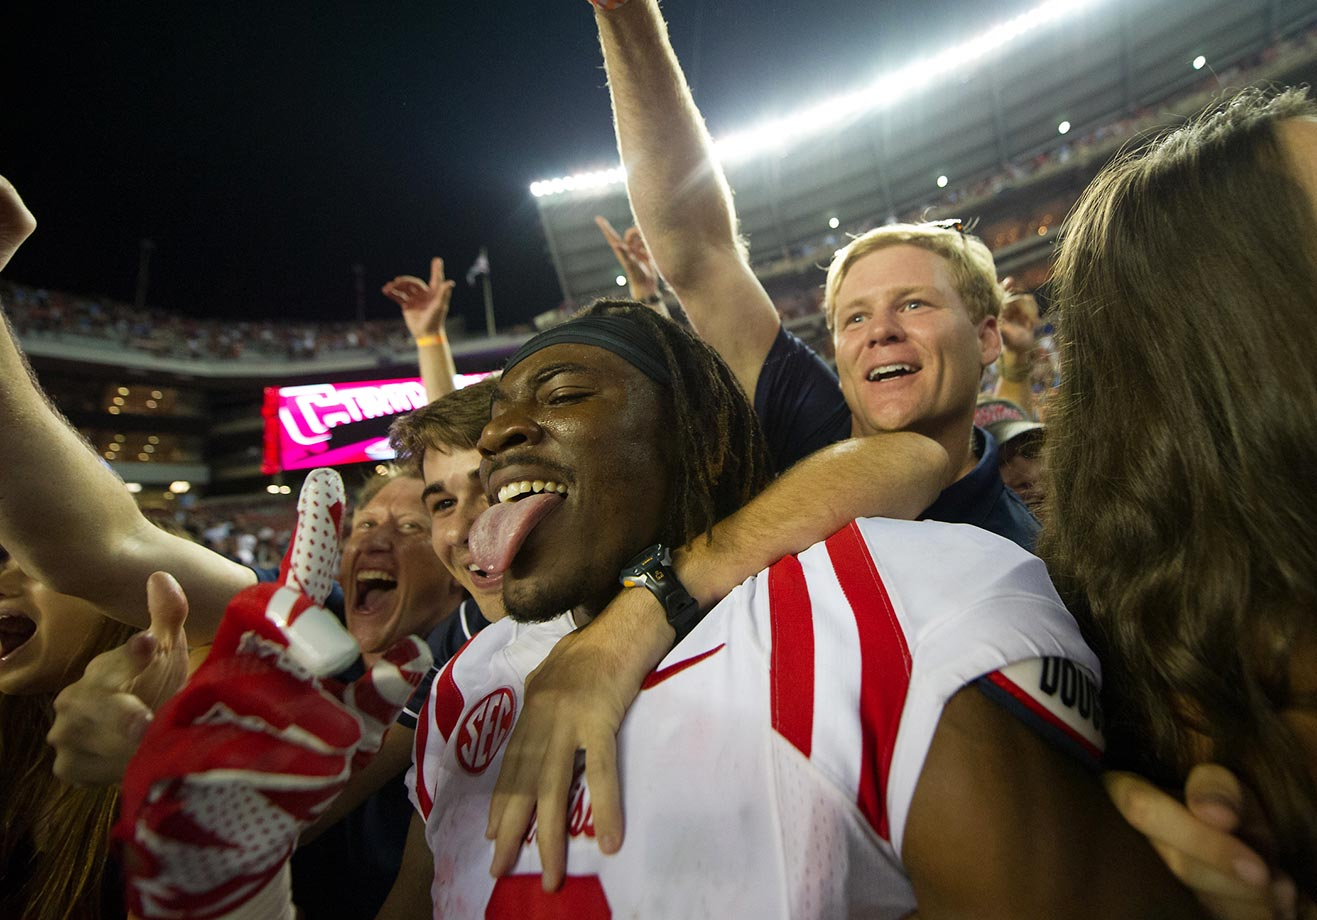 Quincy Adeboyejo of Ole Miss celebrates with fans after the upset of Alabama.